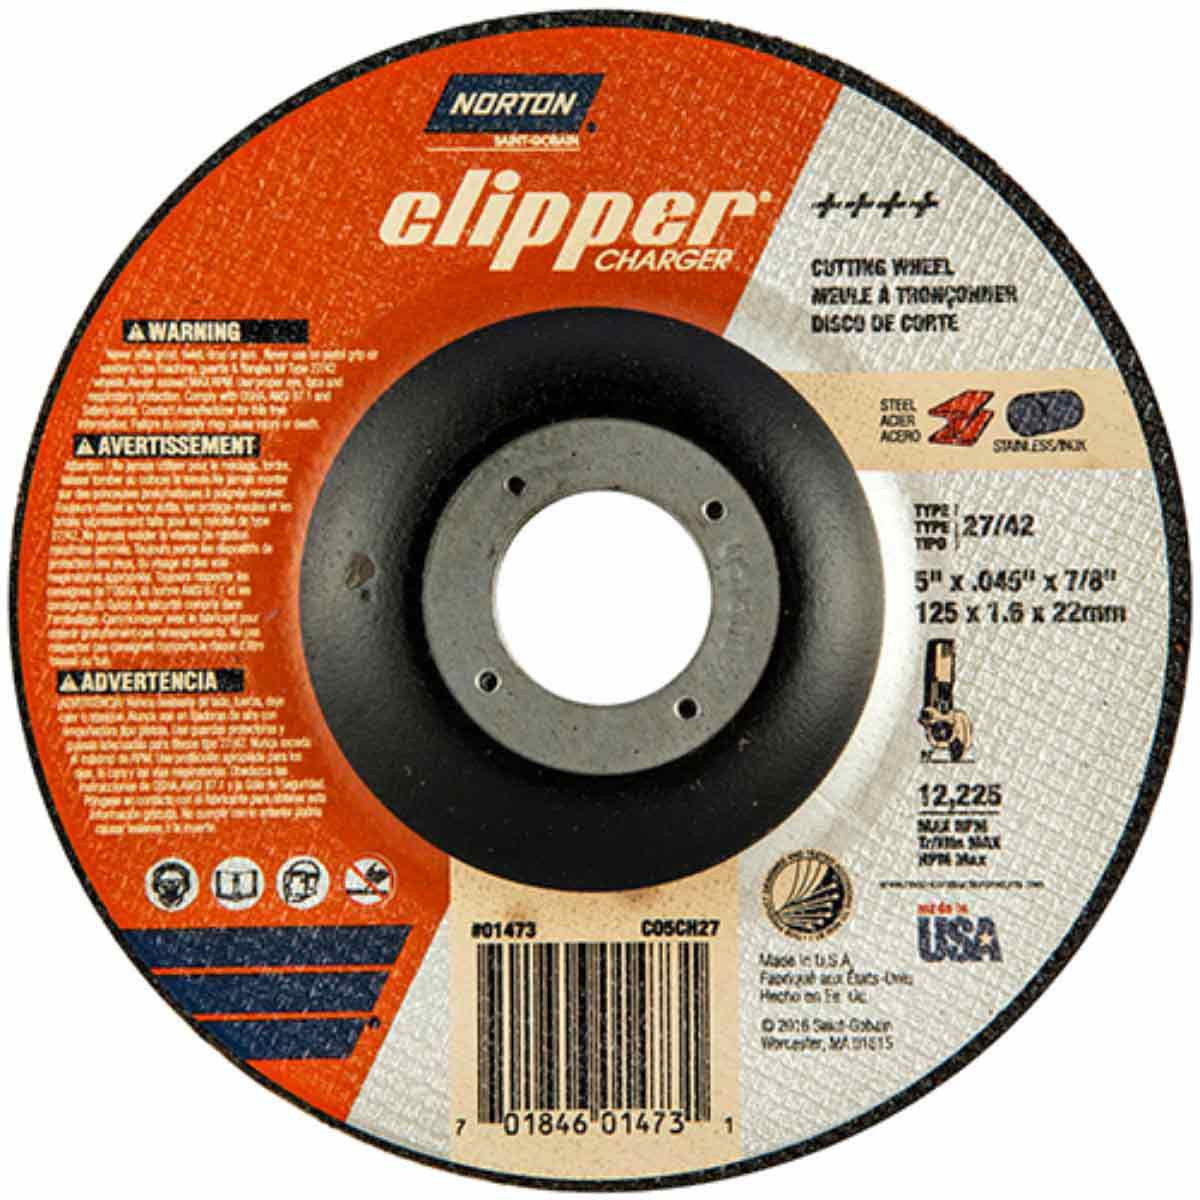 CO5CH27 Norton Charger Abrasive Type 27 Cut-Off Wheels